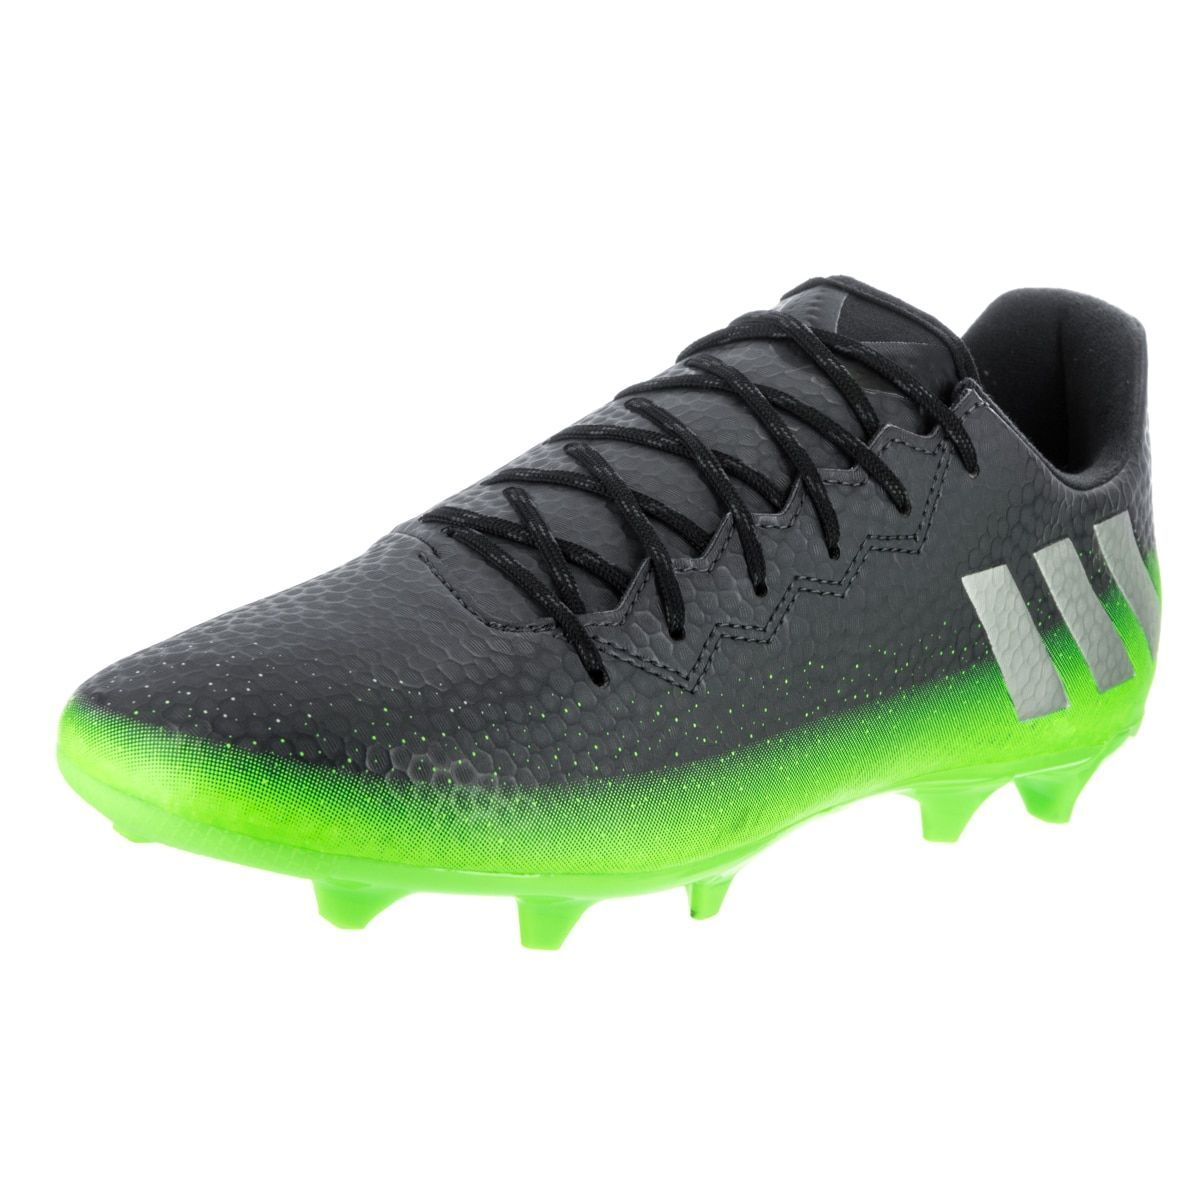 0a03e623c Adidas Men s Messi 16.3 FG Soccer Cleats